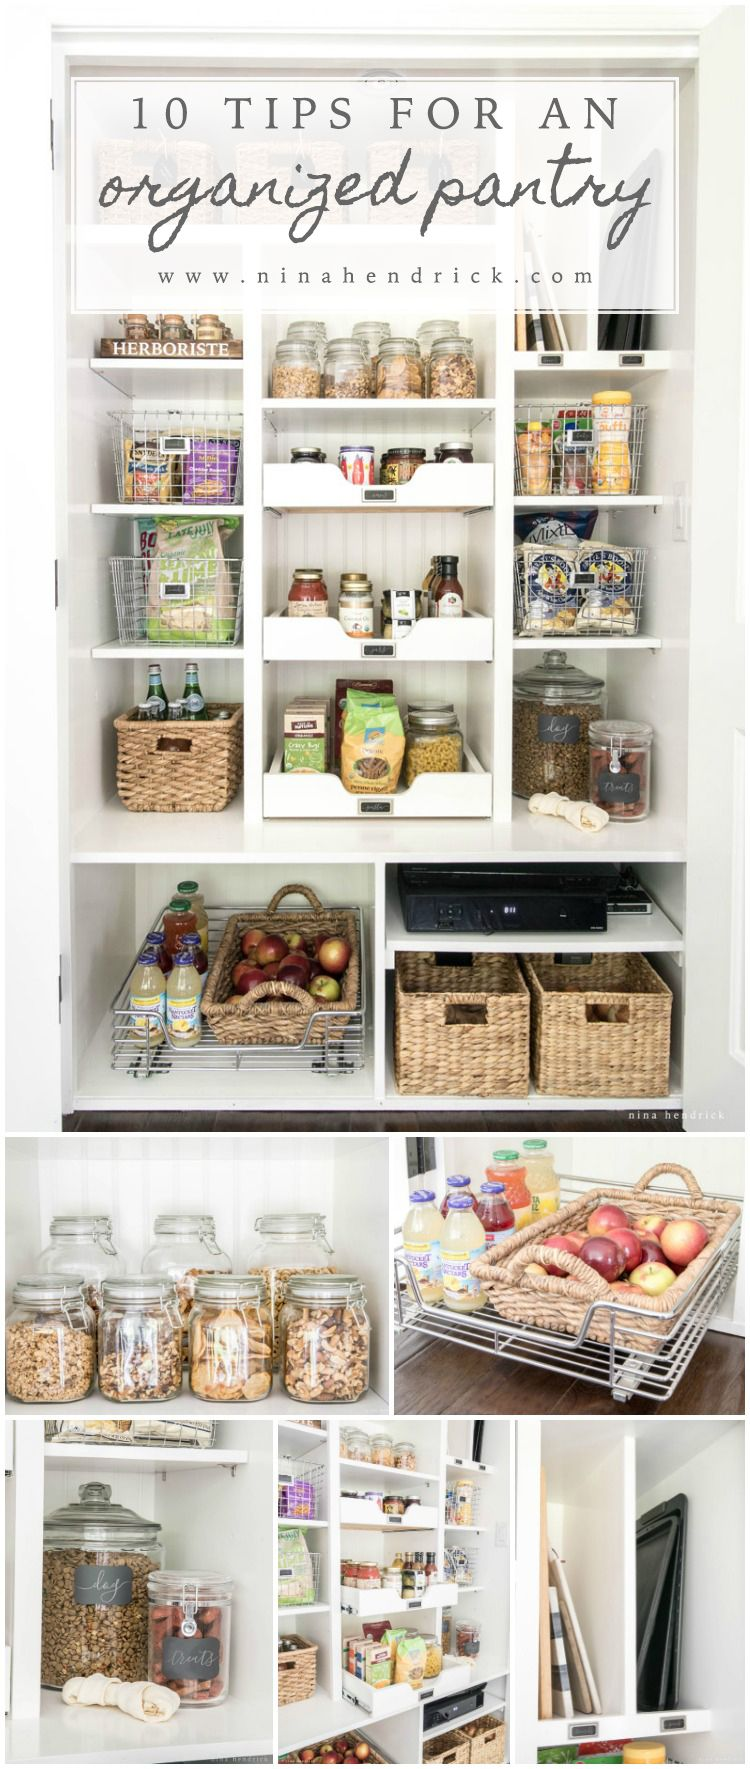 10 Tips For An Organized Pantry Create An Organized Pantry With